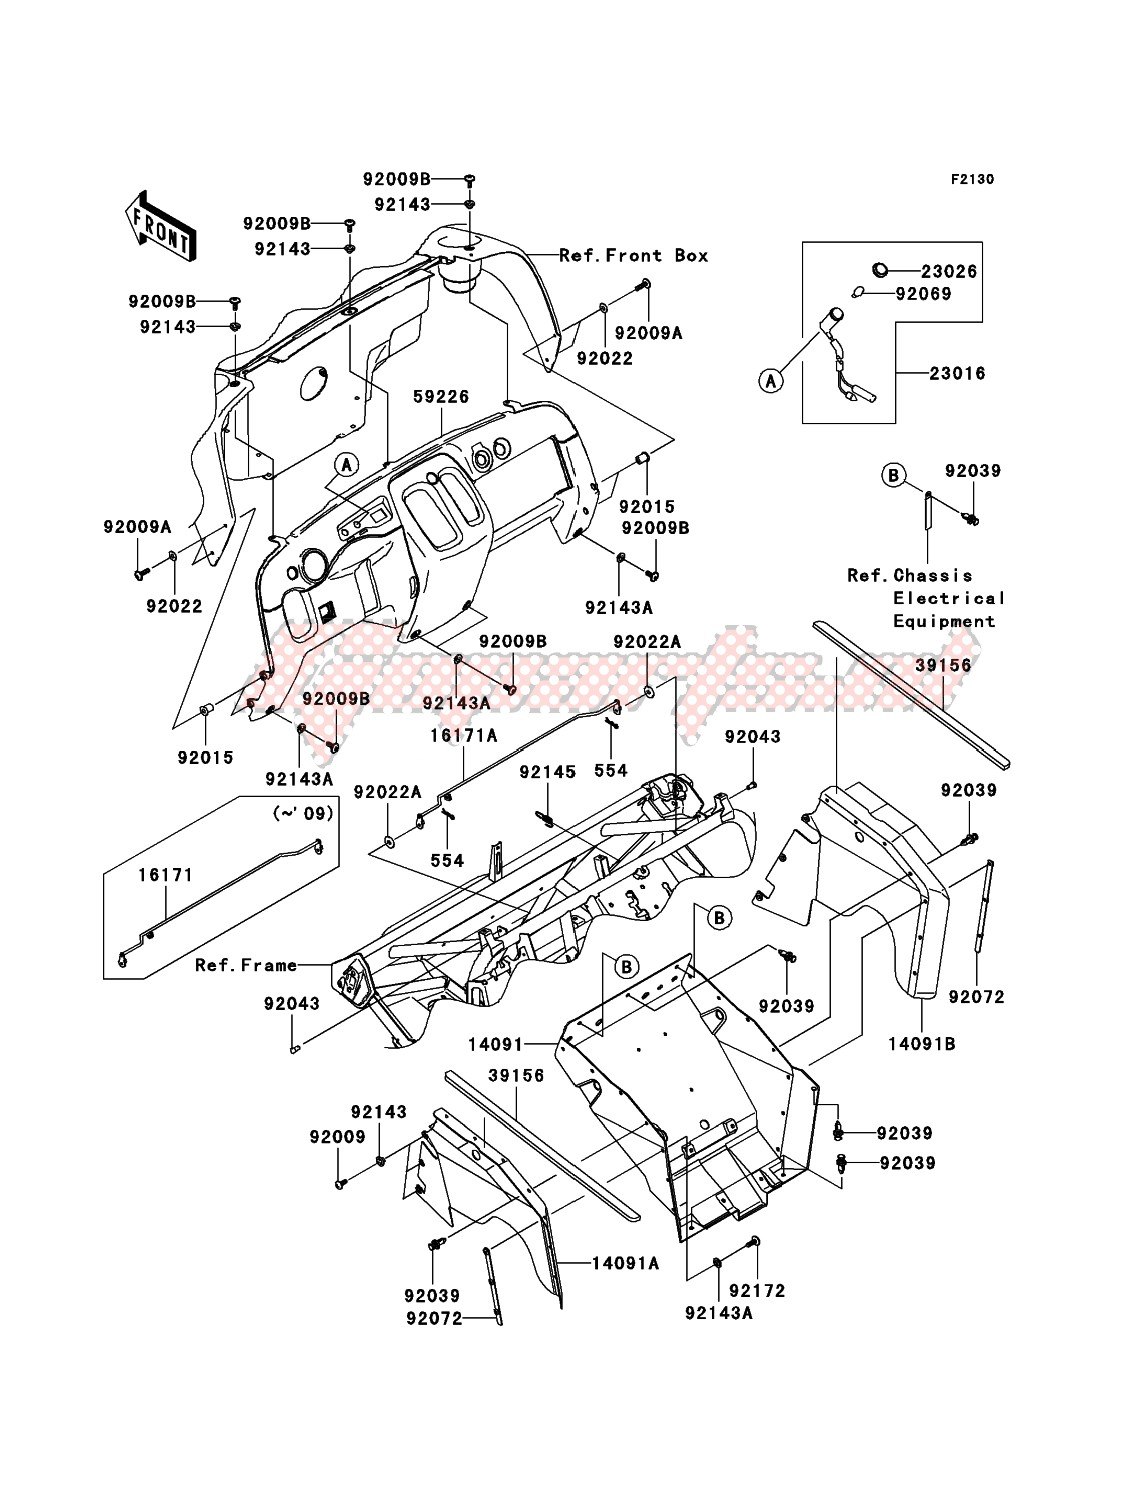 Frame Fittings(Front) image